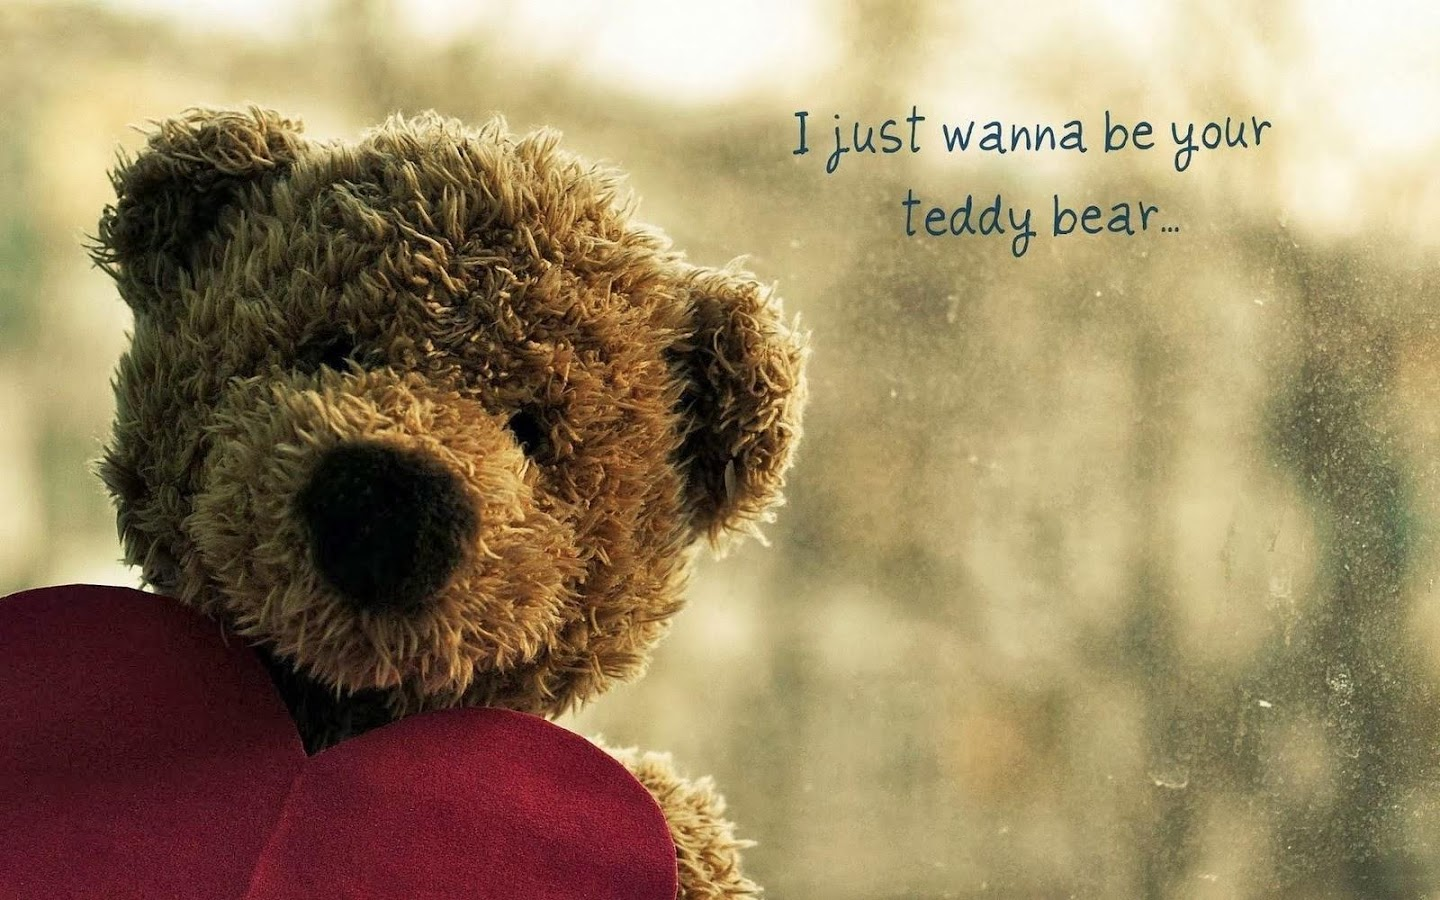 Teddy Bear Set Wallpapers Apl Android Di Google Play